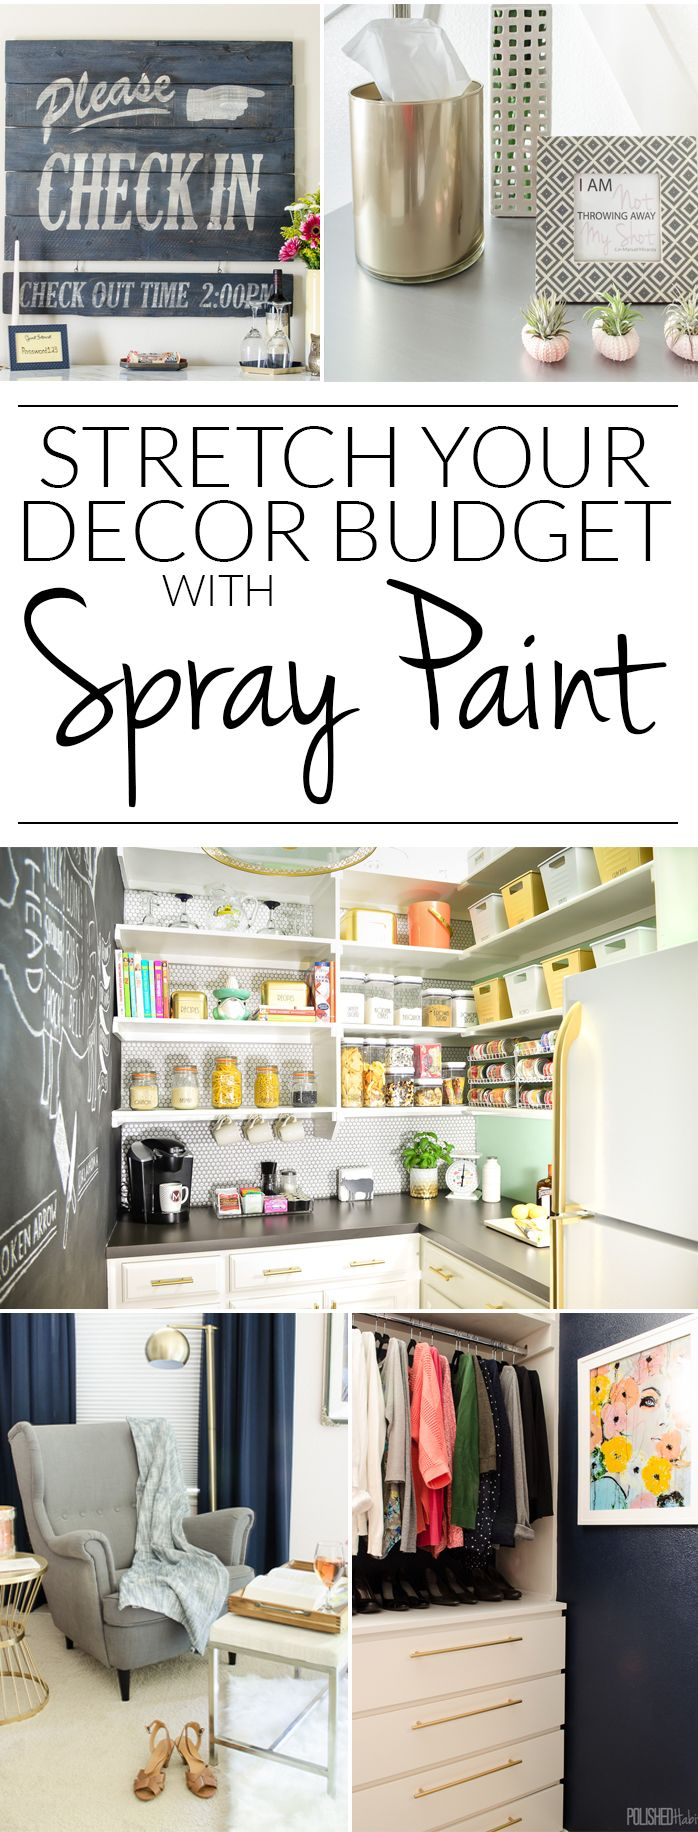 12 Ways to Stretch Your Decor Budget with Spray Paint | Me gustas ...